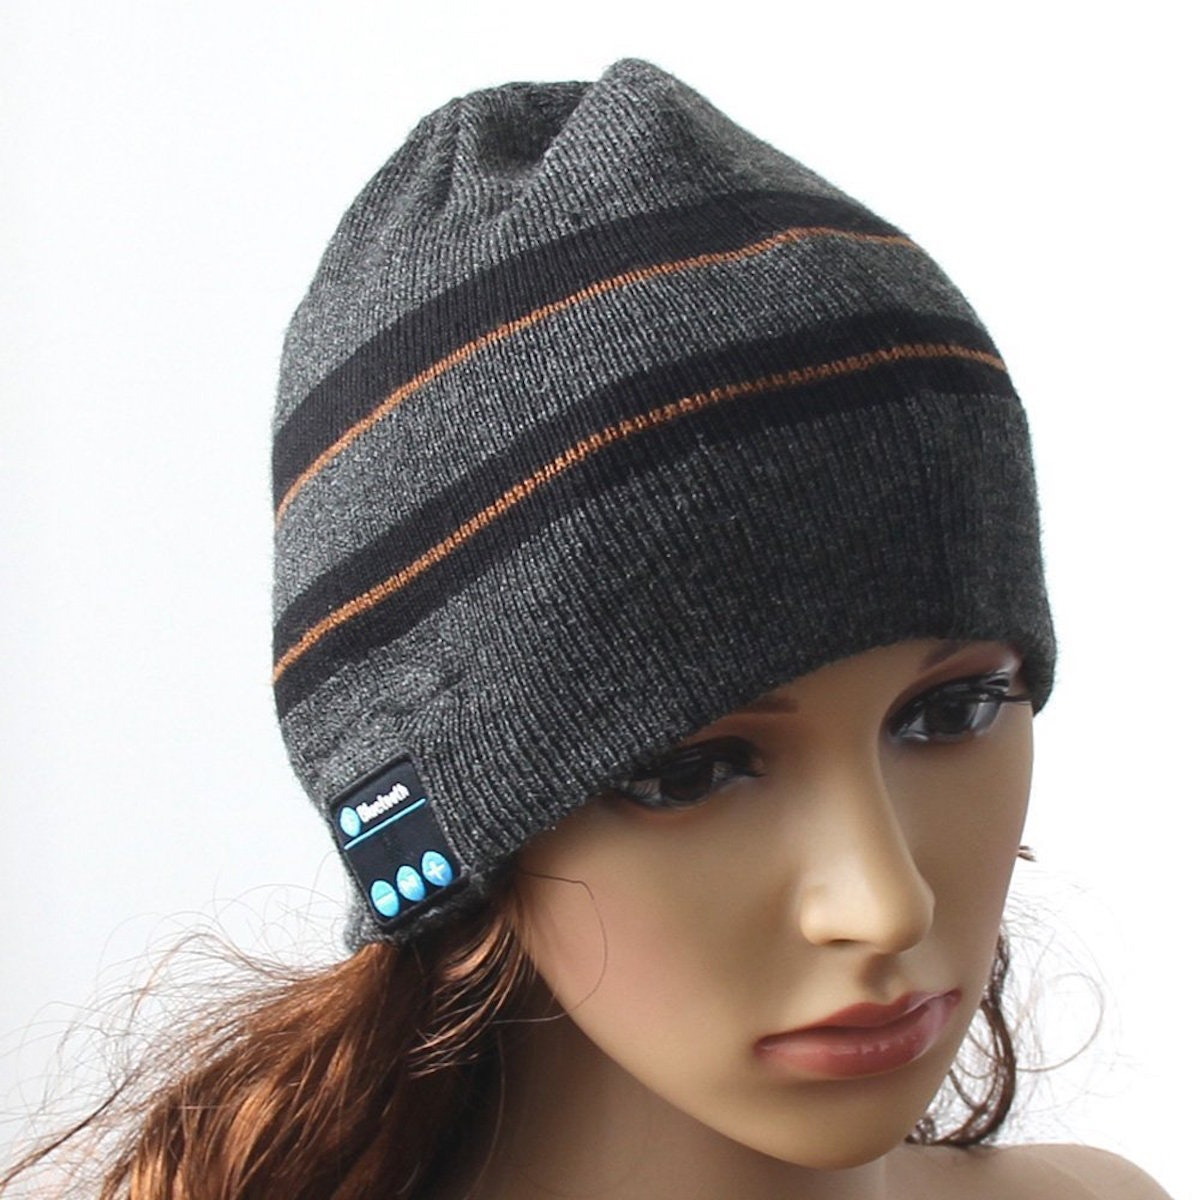 This beanie hat with wireless Bluetooth headphones